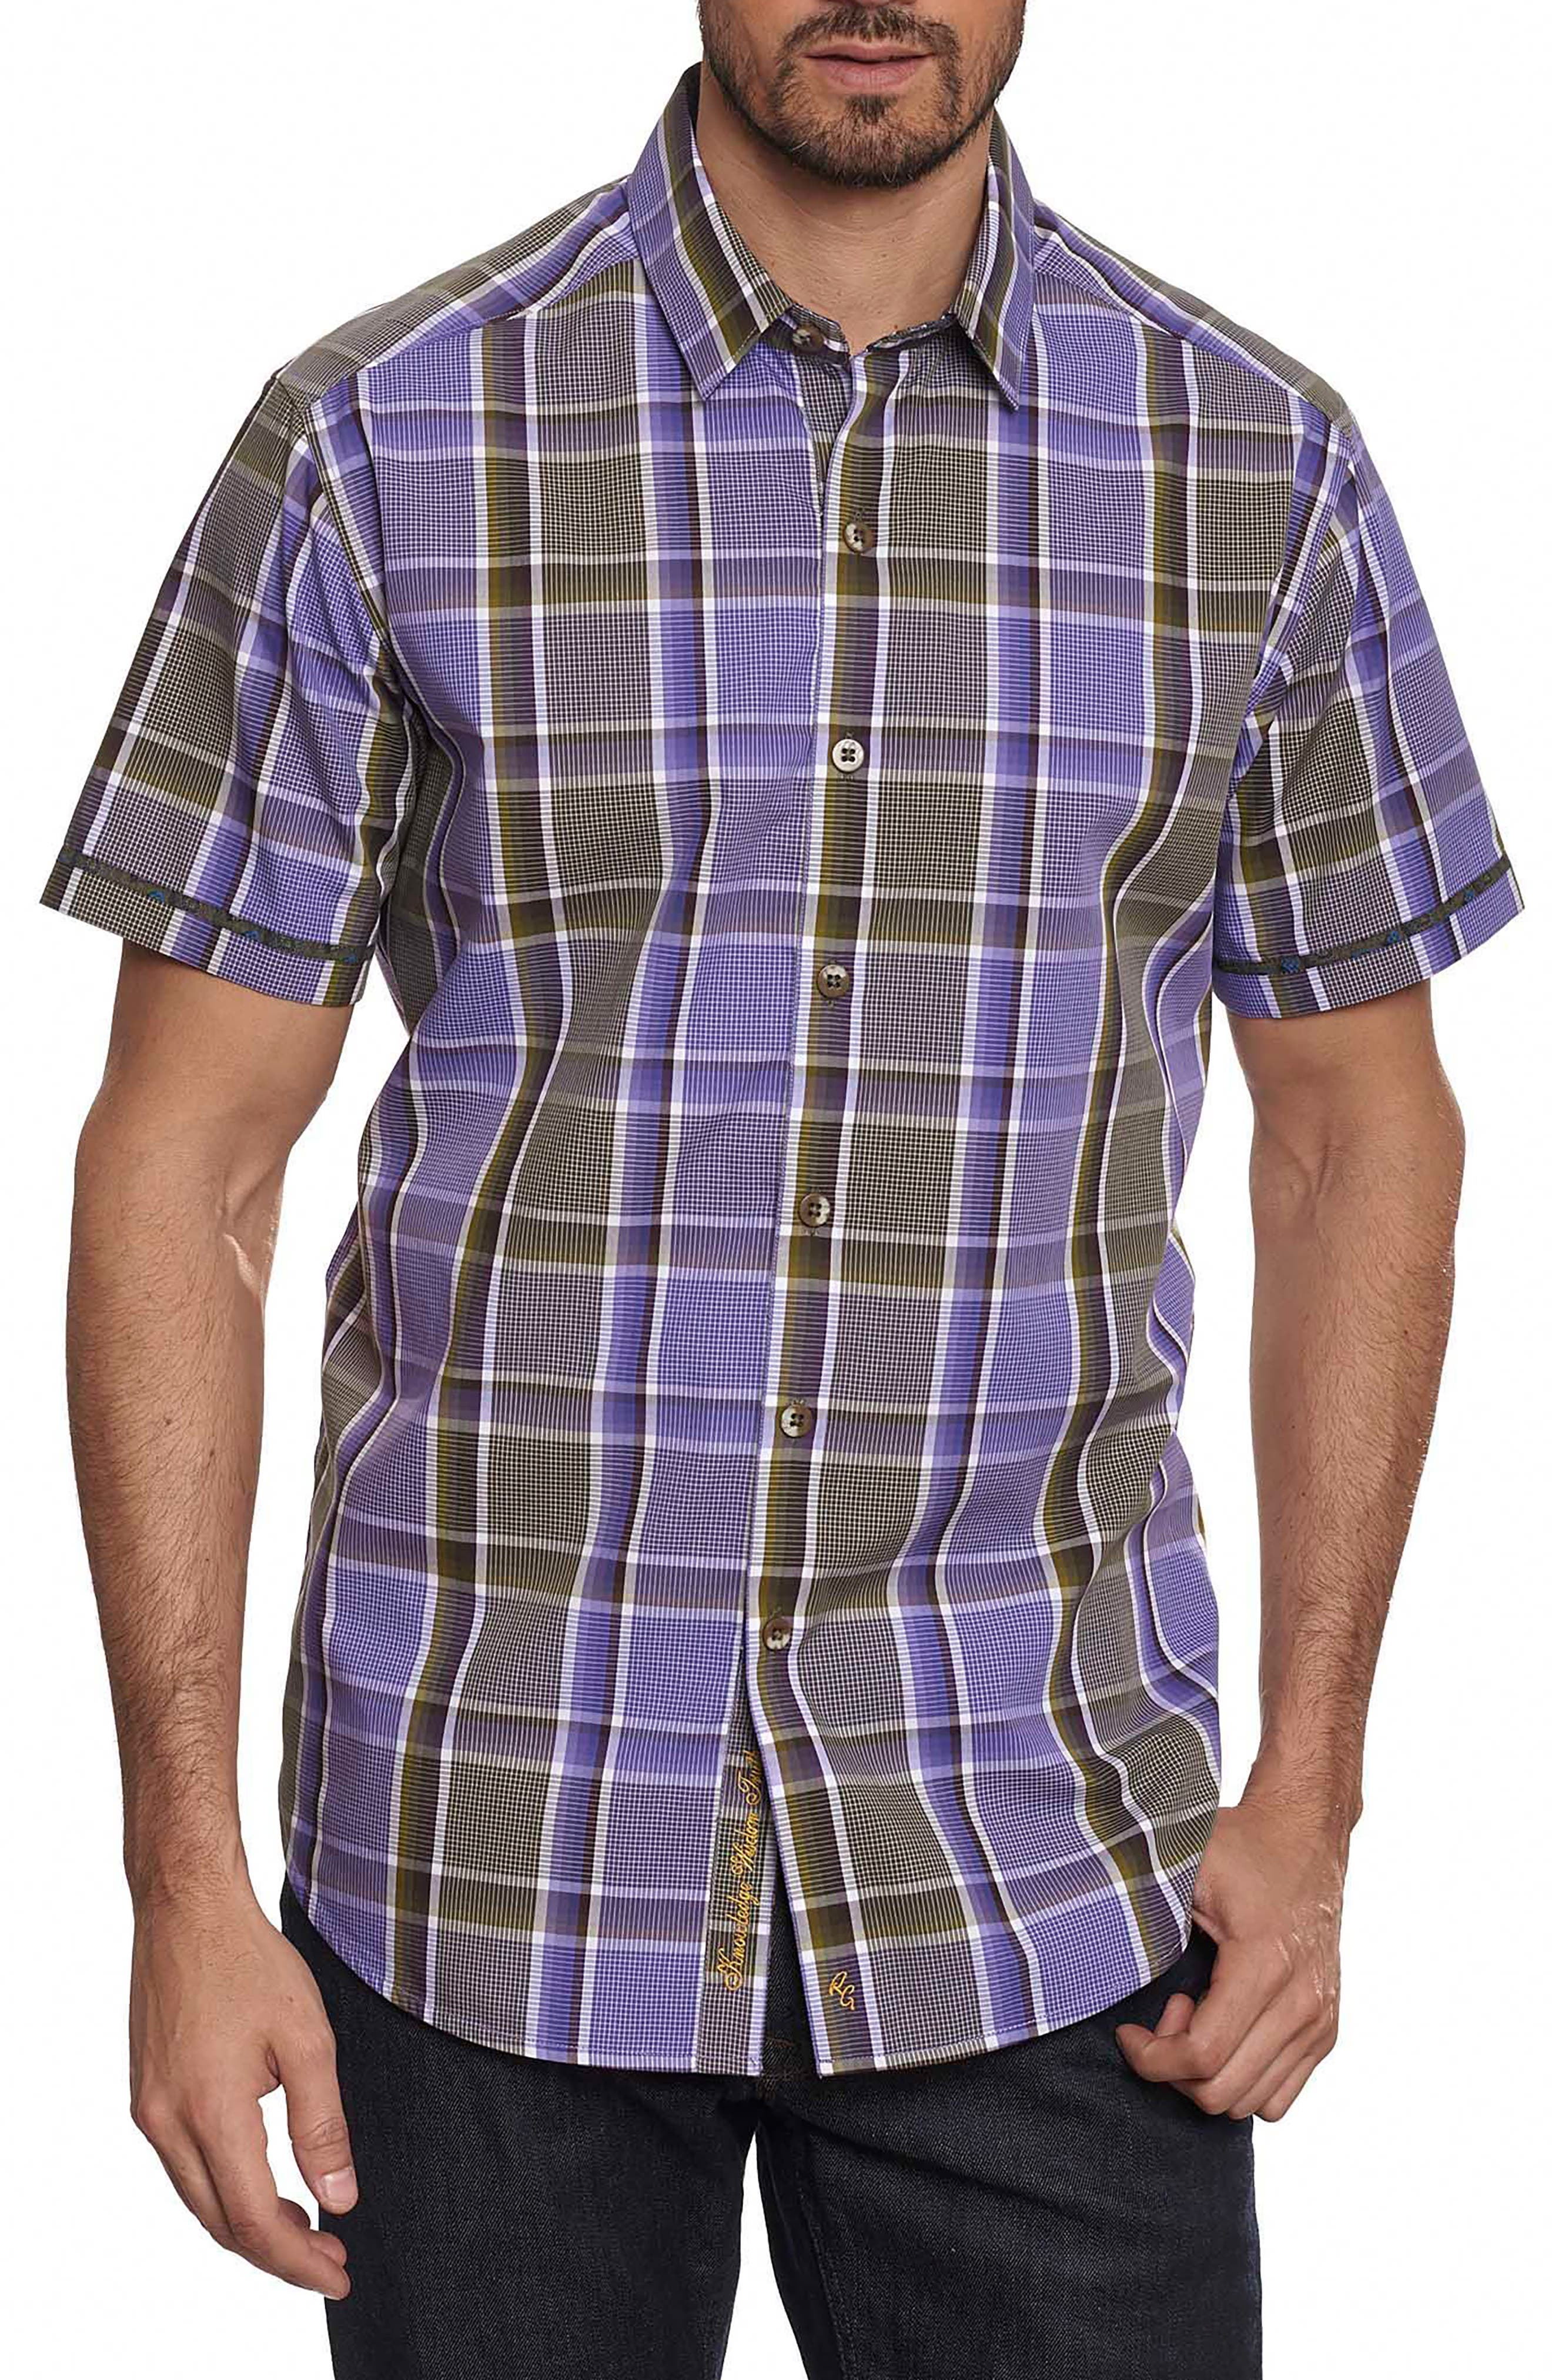 Stone Bridge Classic Fit Sport Shirt,                             Main thumbnail 1, color,                             Purple